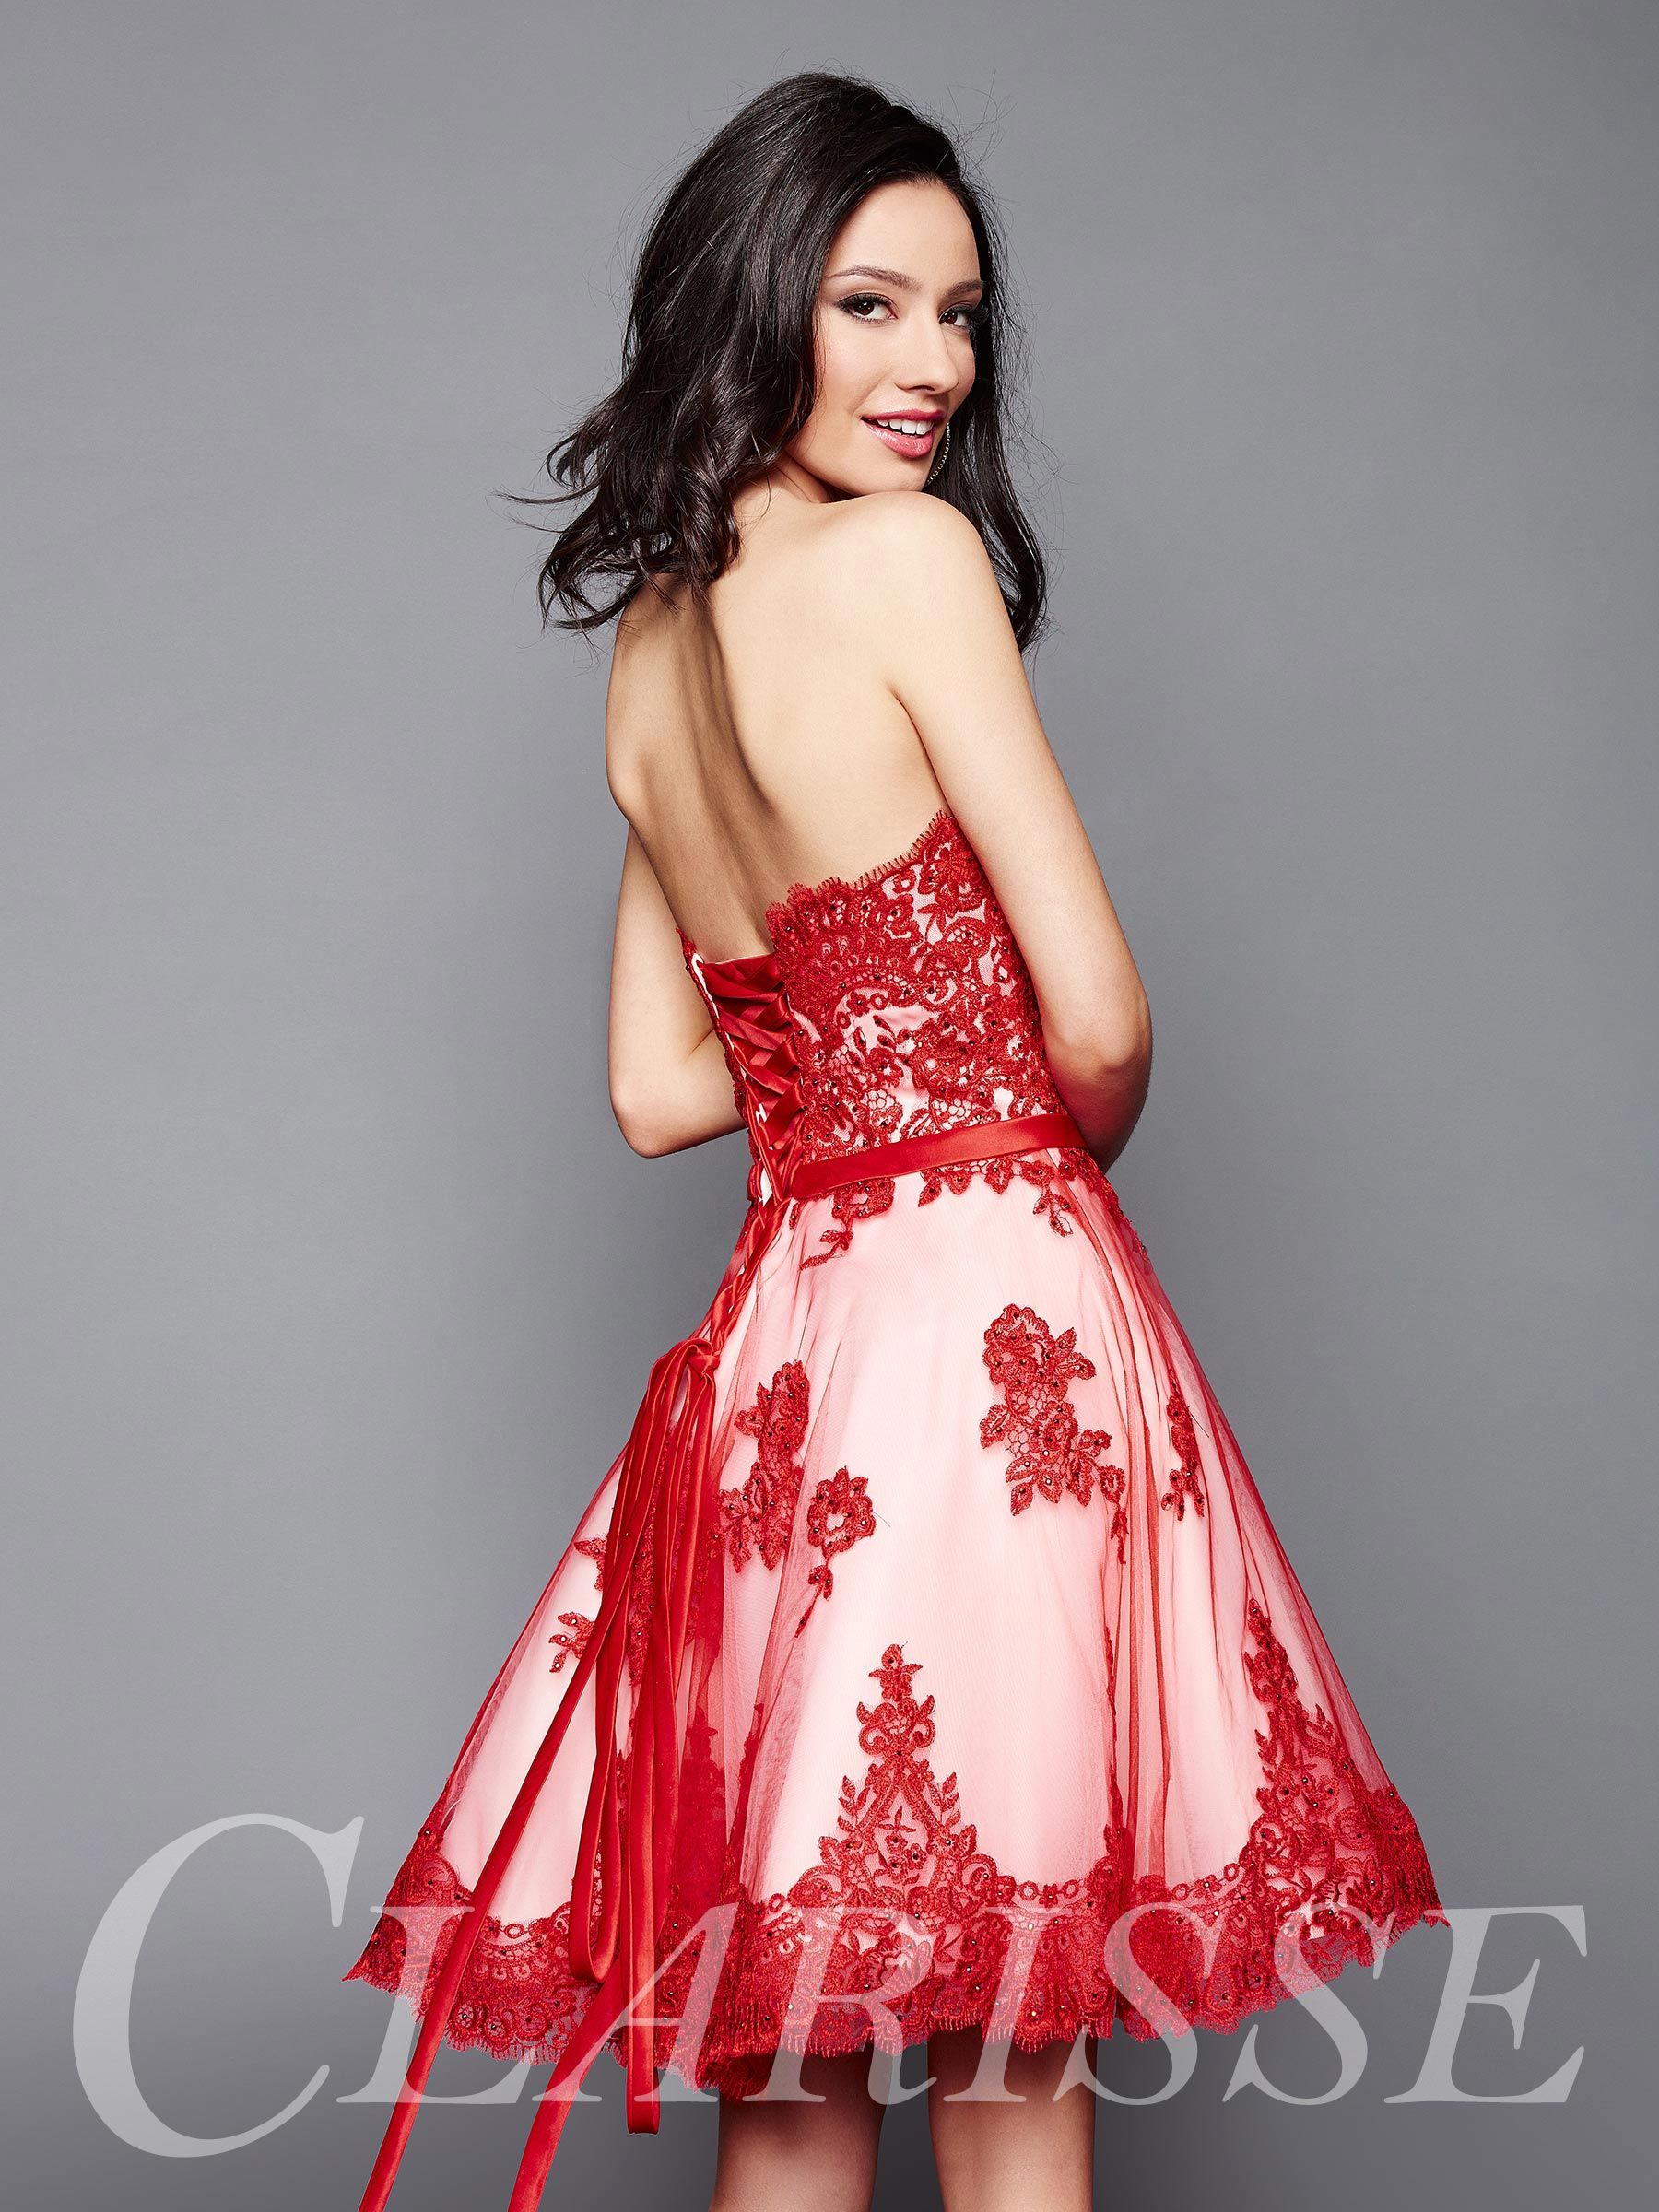 5942c82c489d Adorable red and white lace homecoming dress by Clarisse 3367! DESCRIPTION:  Strapless, short